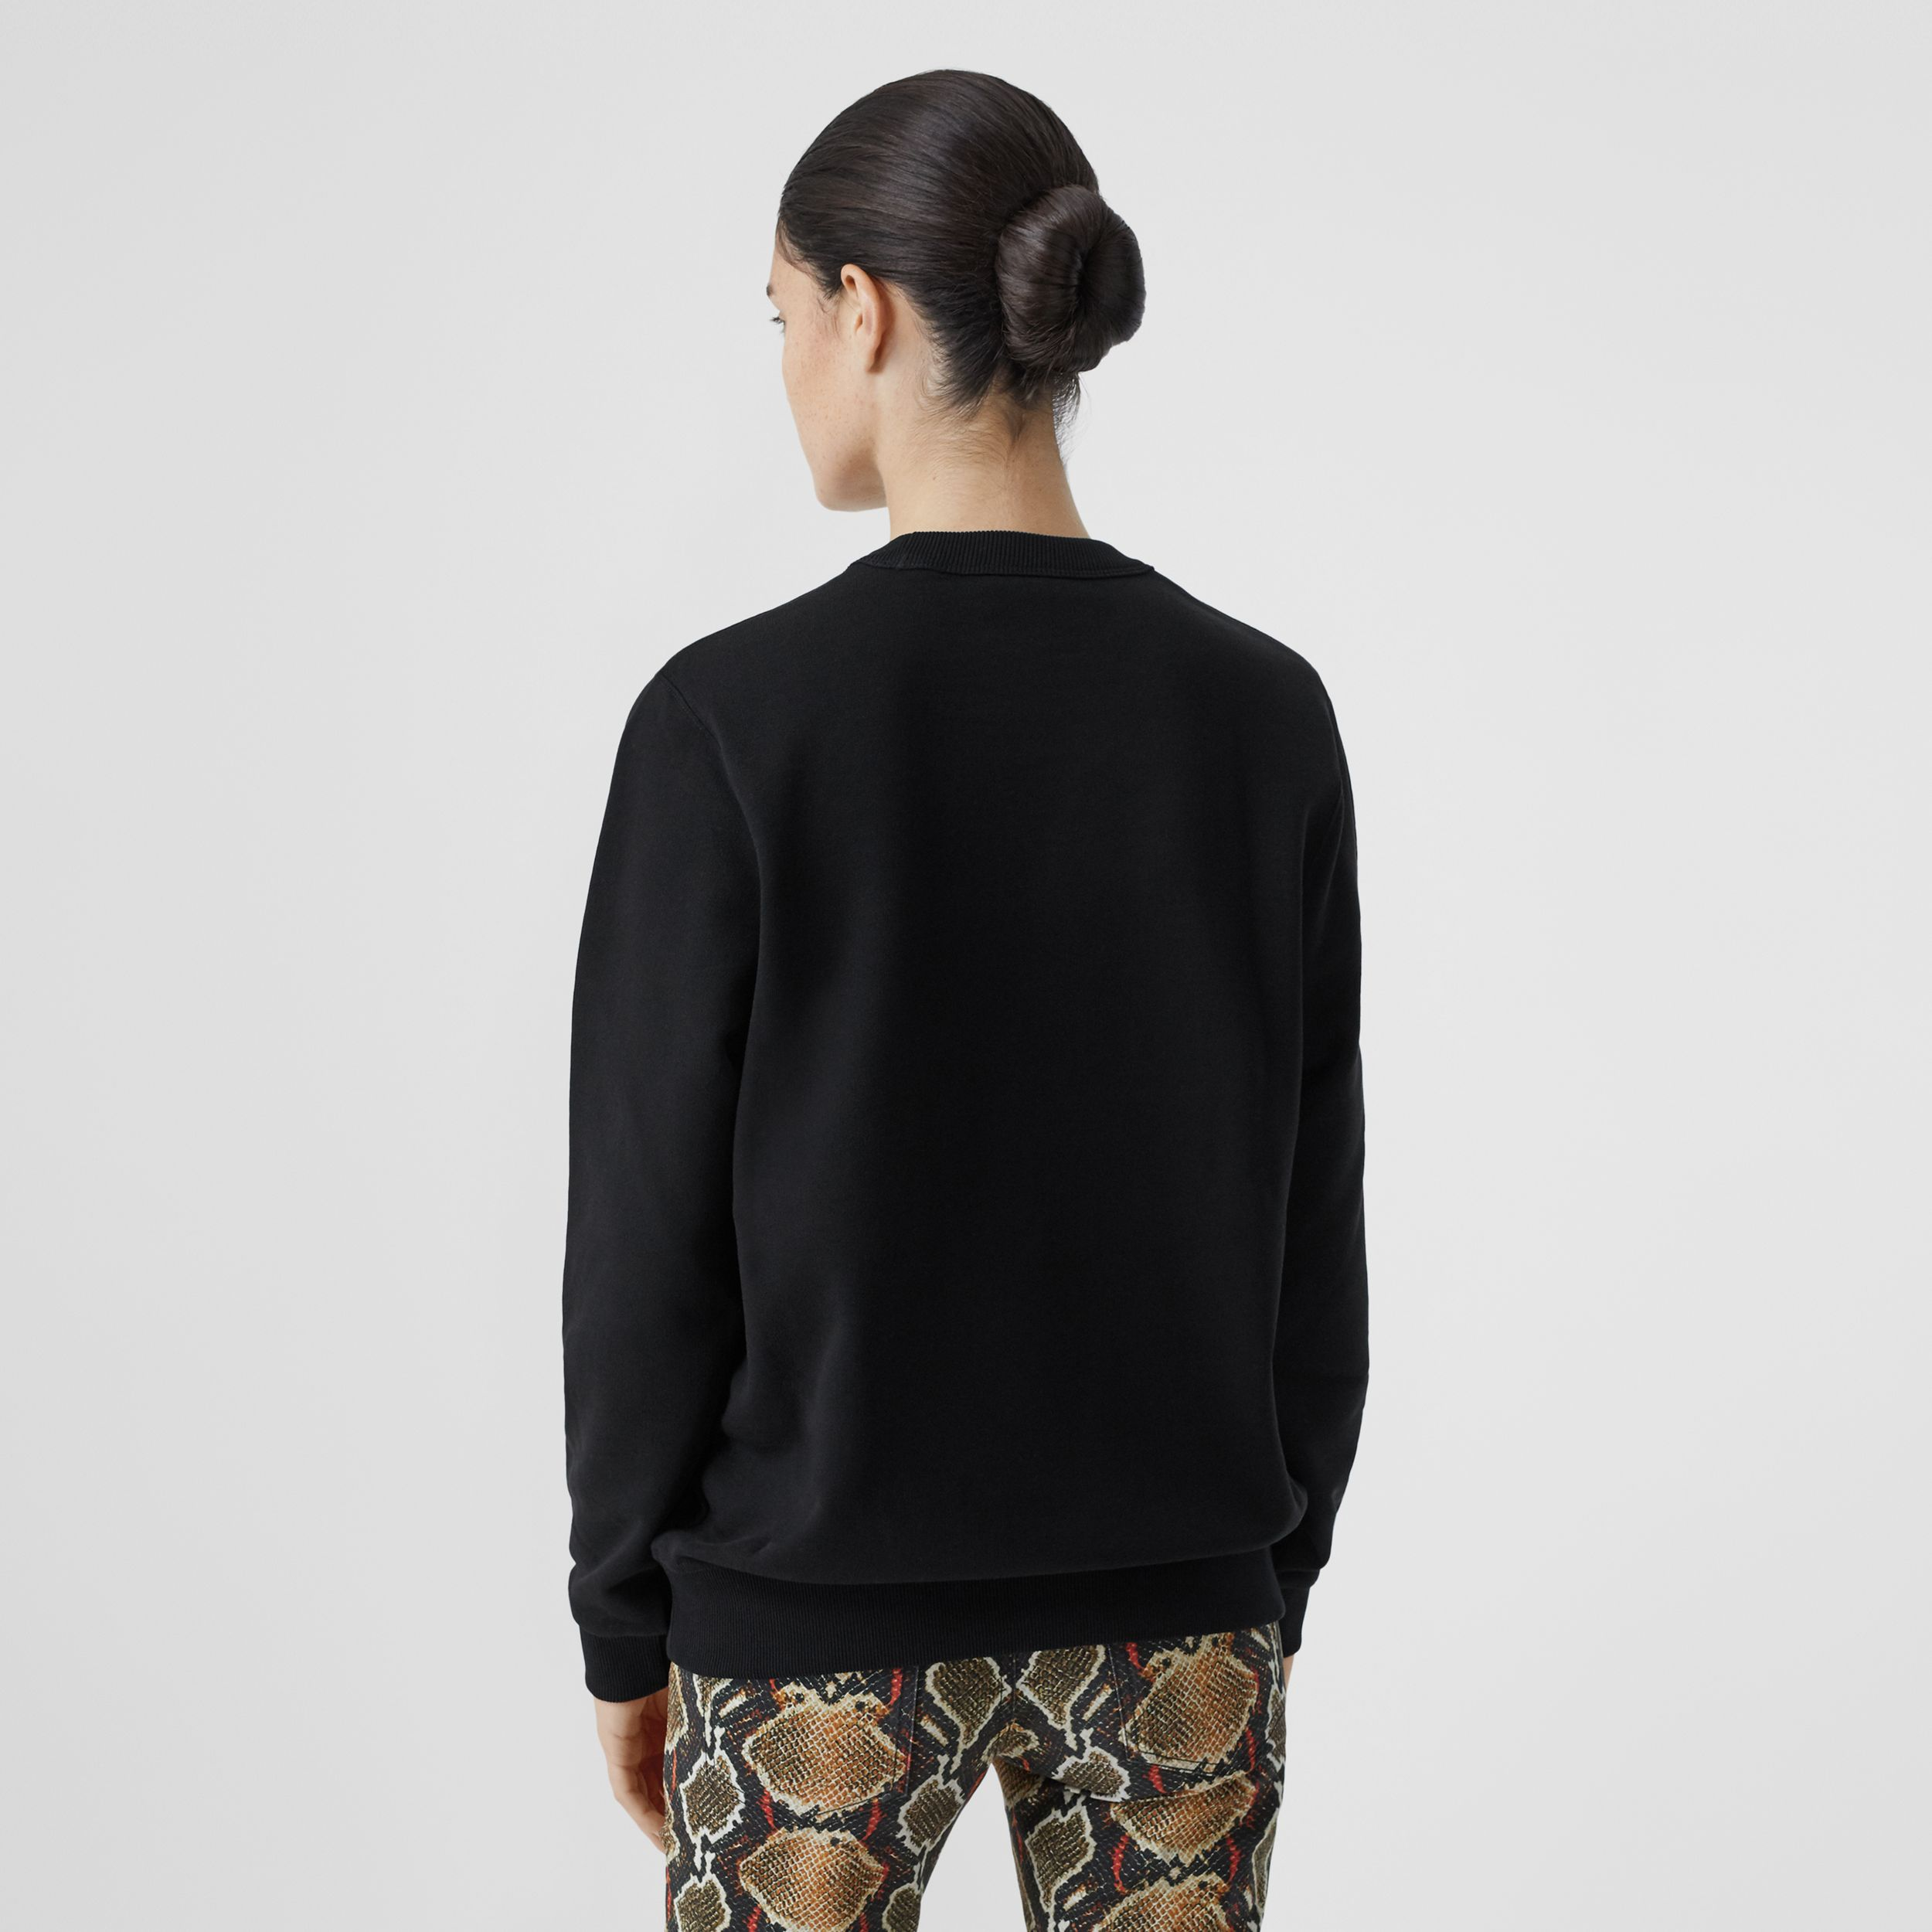 Monogram Motif Cotton Sweatshirt in Black - Women | Burberry - 3